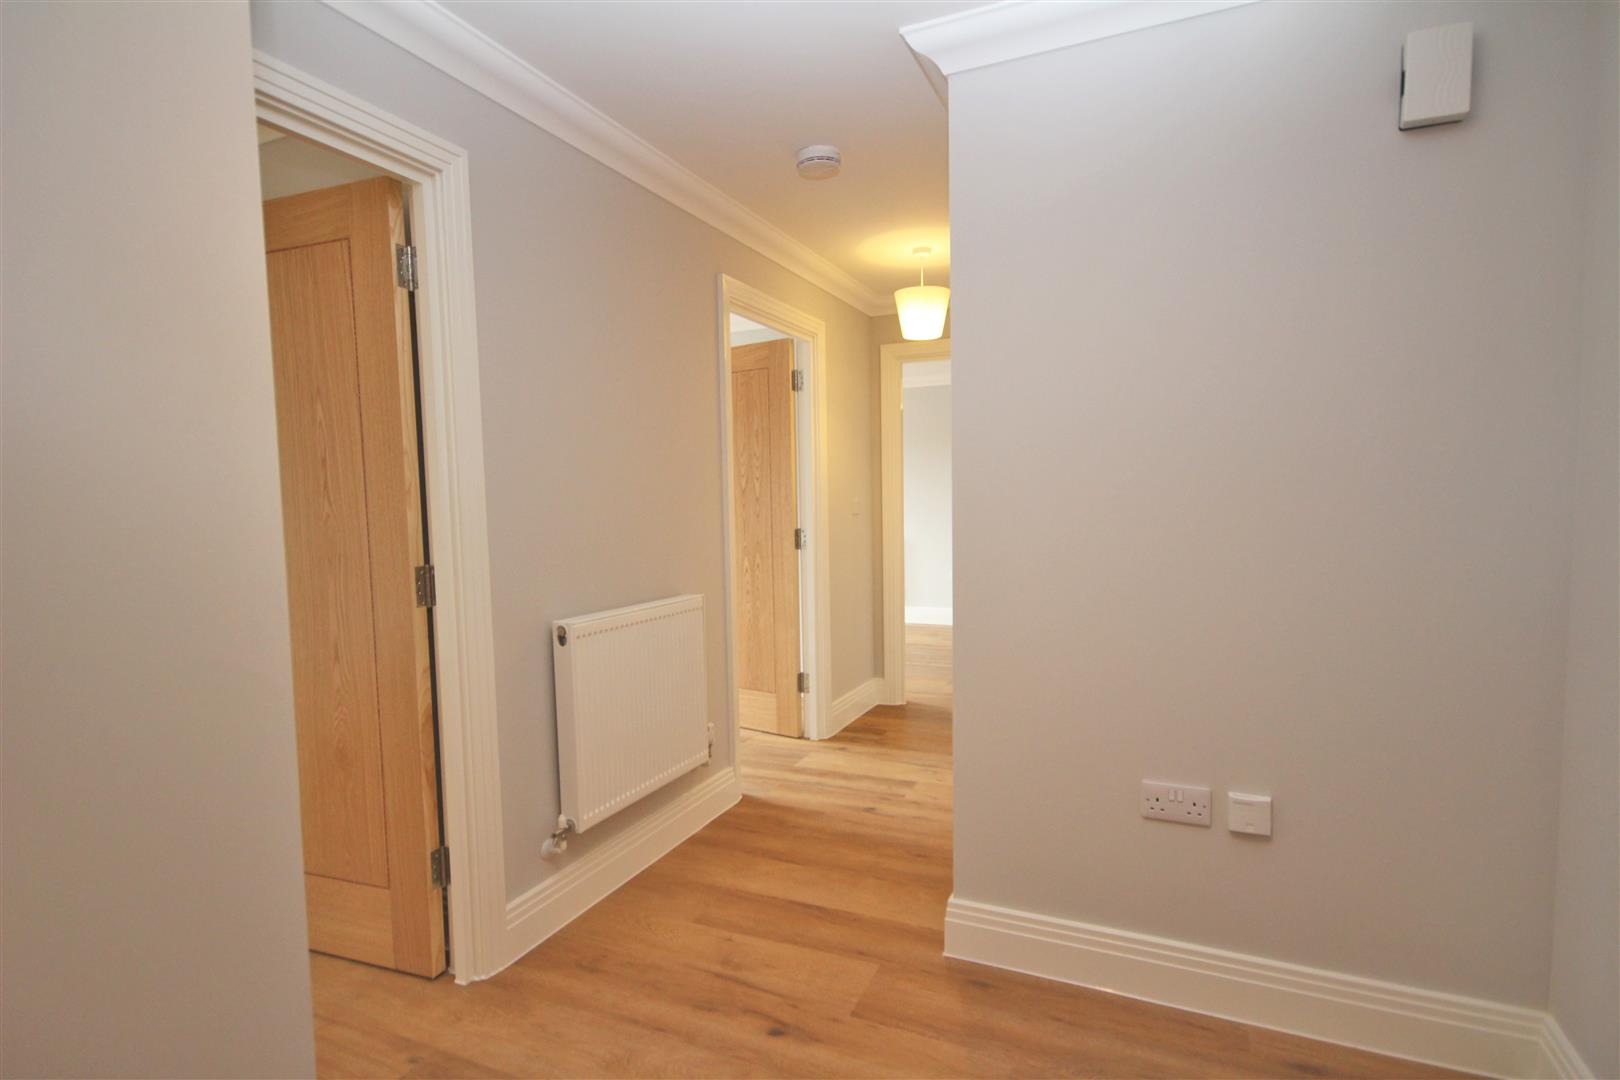 2 bed Flat to rent - (Property Image 6)